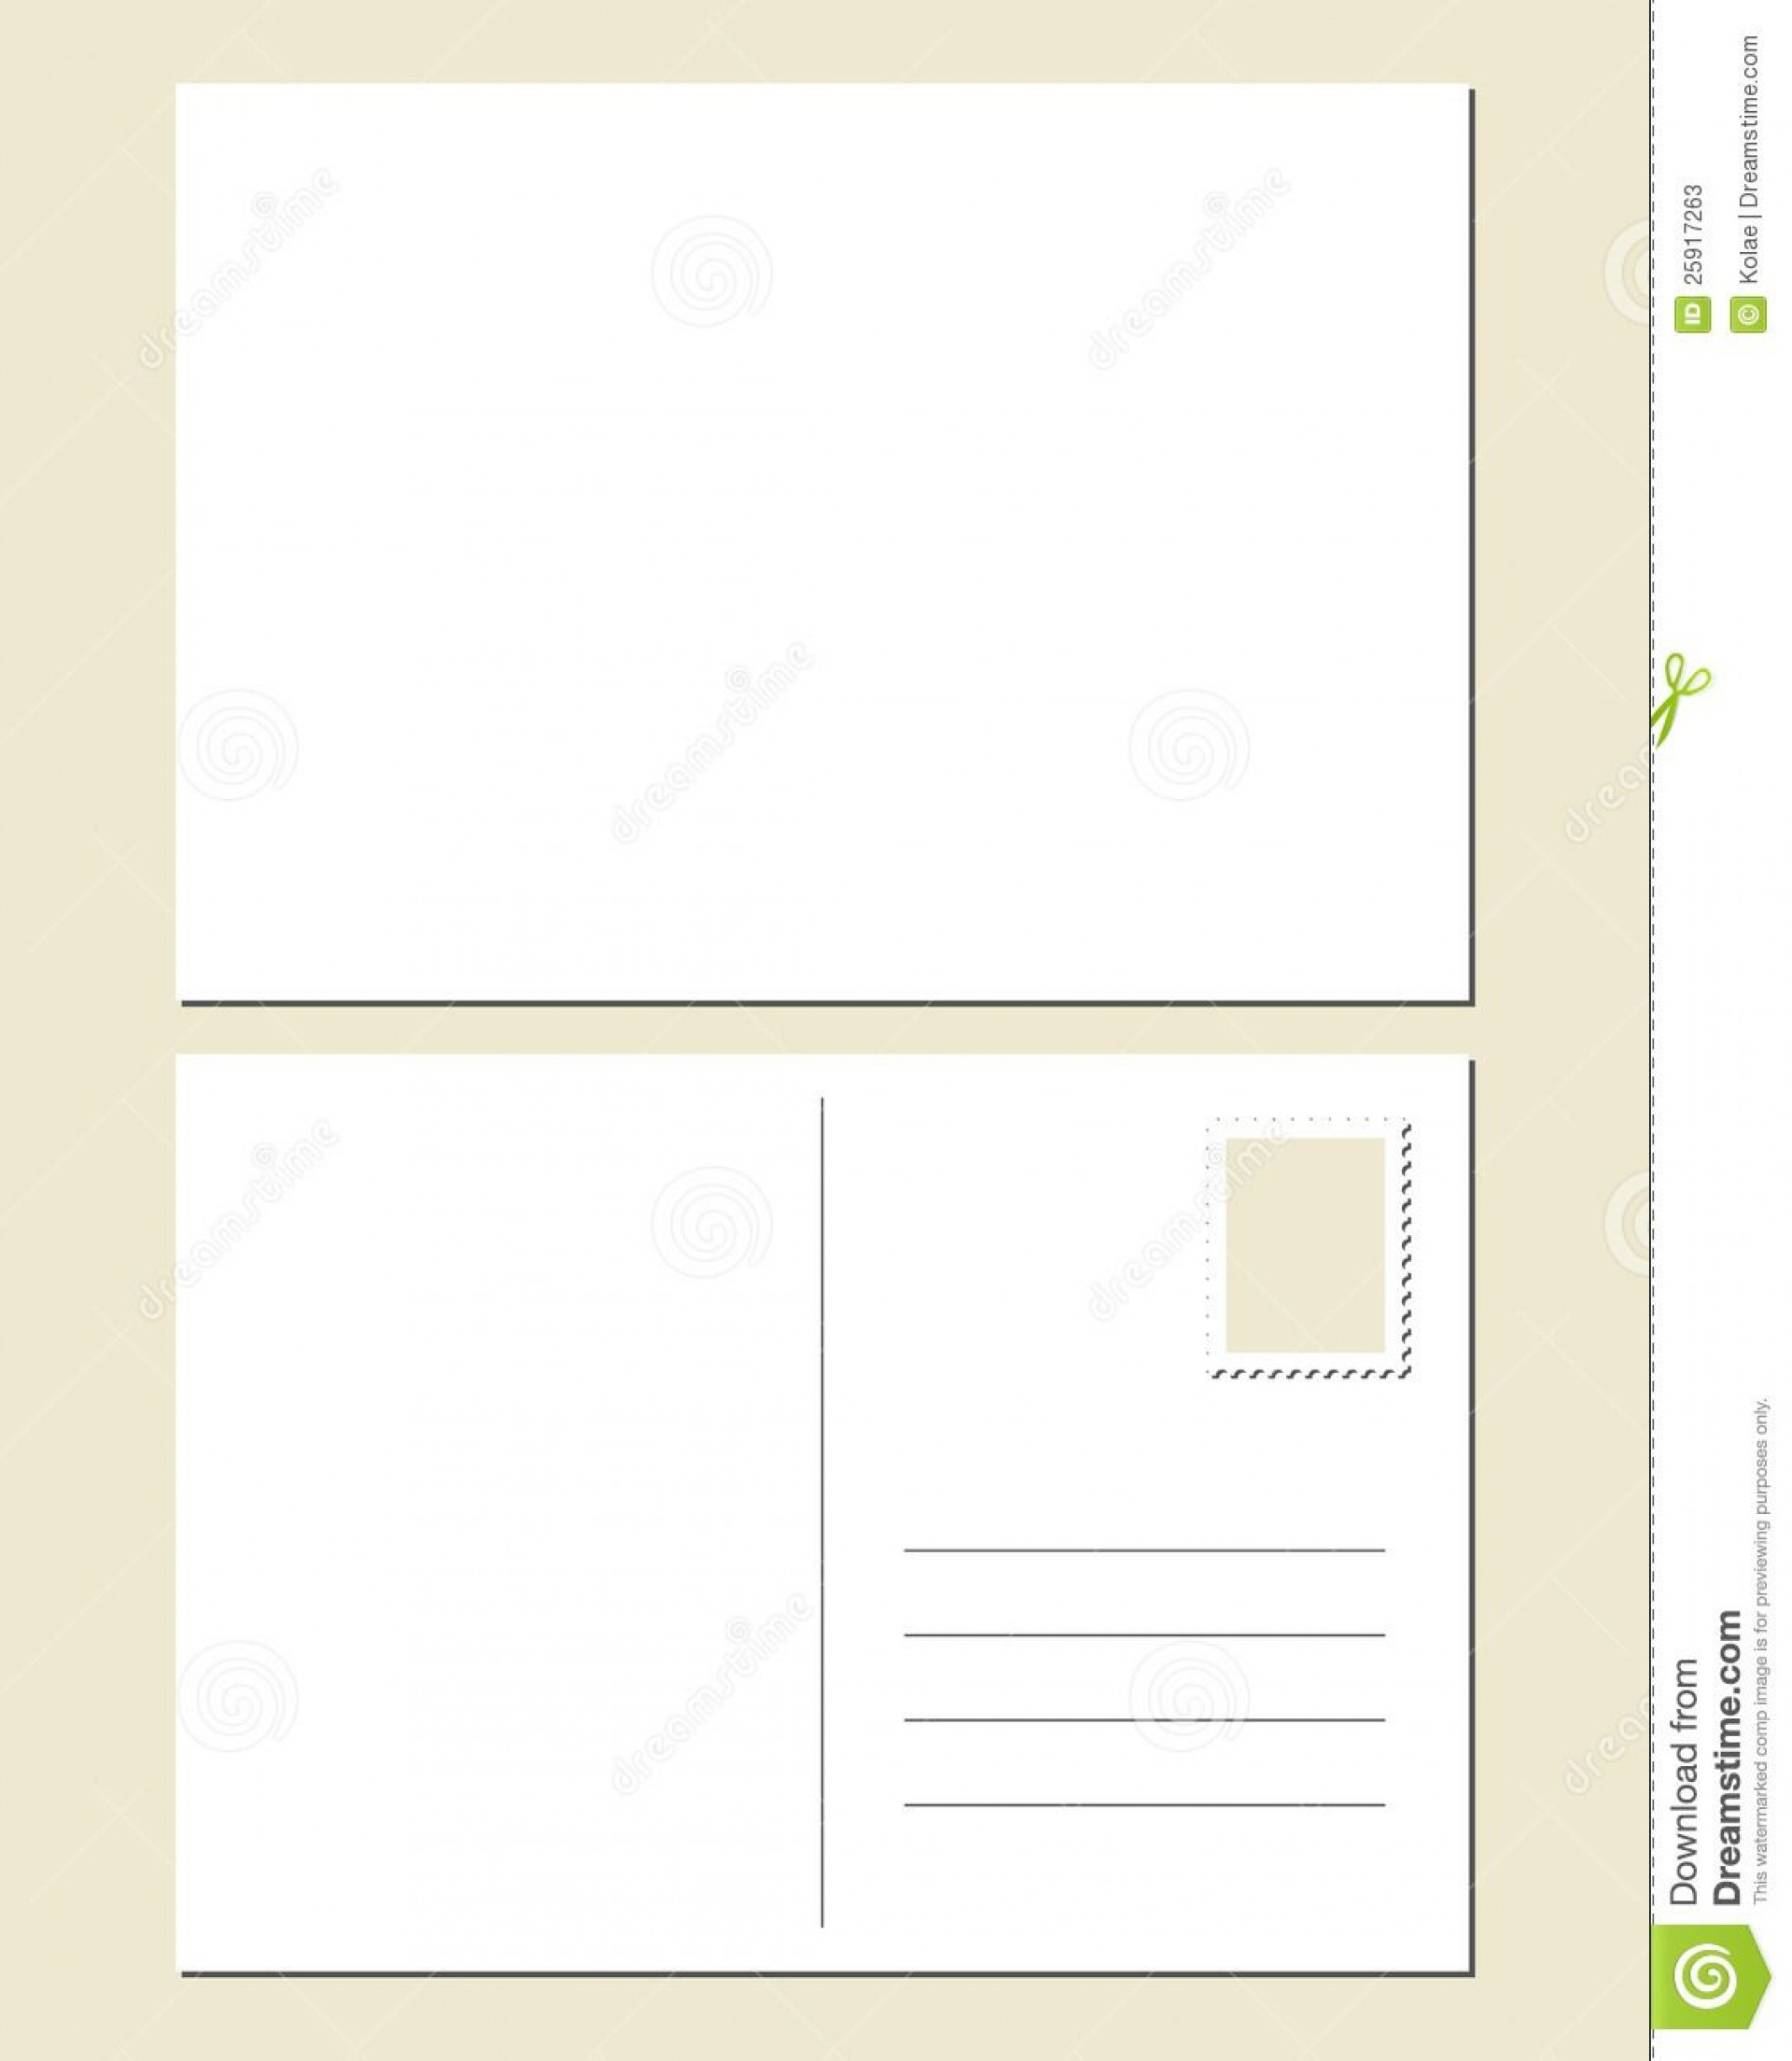 006 Impressive Postcard Template Front And Back Highest Quality  Free Word1920